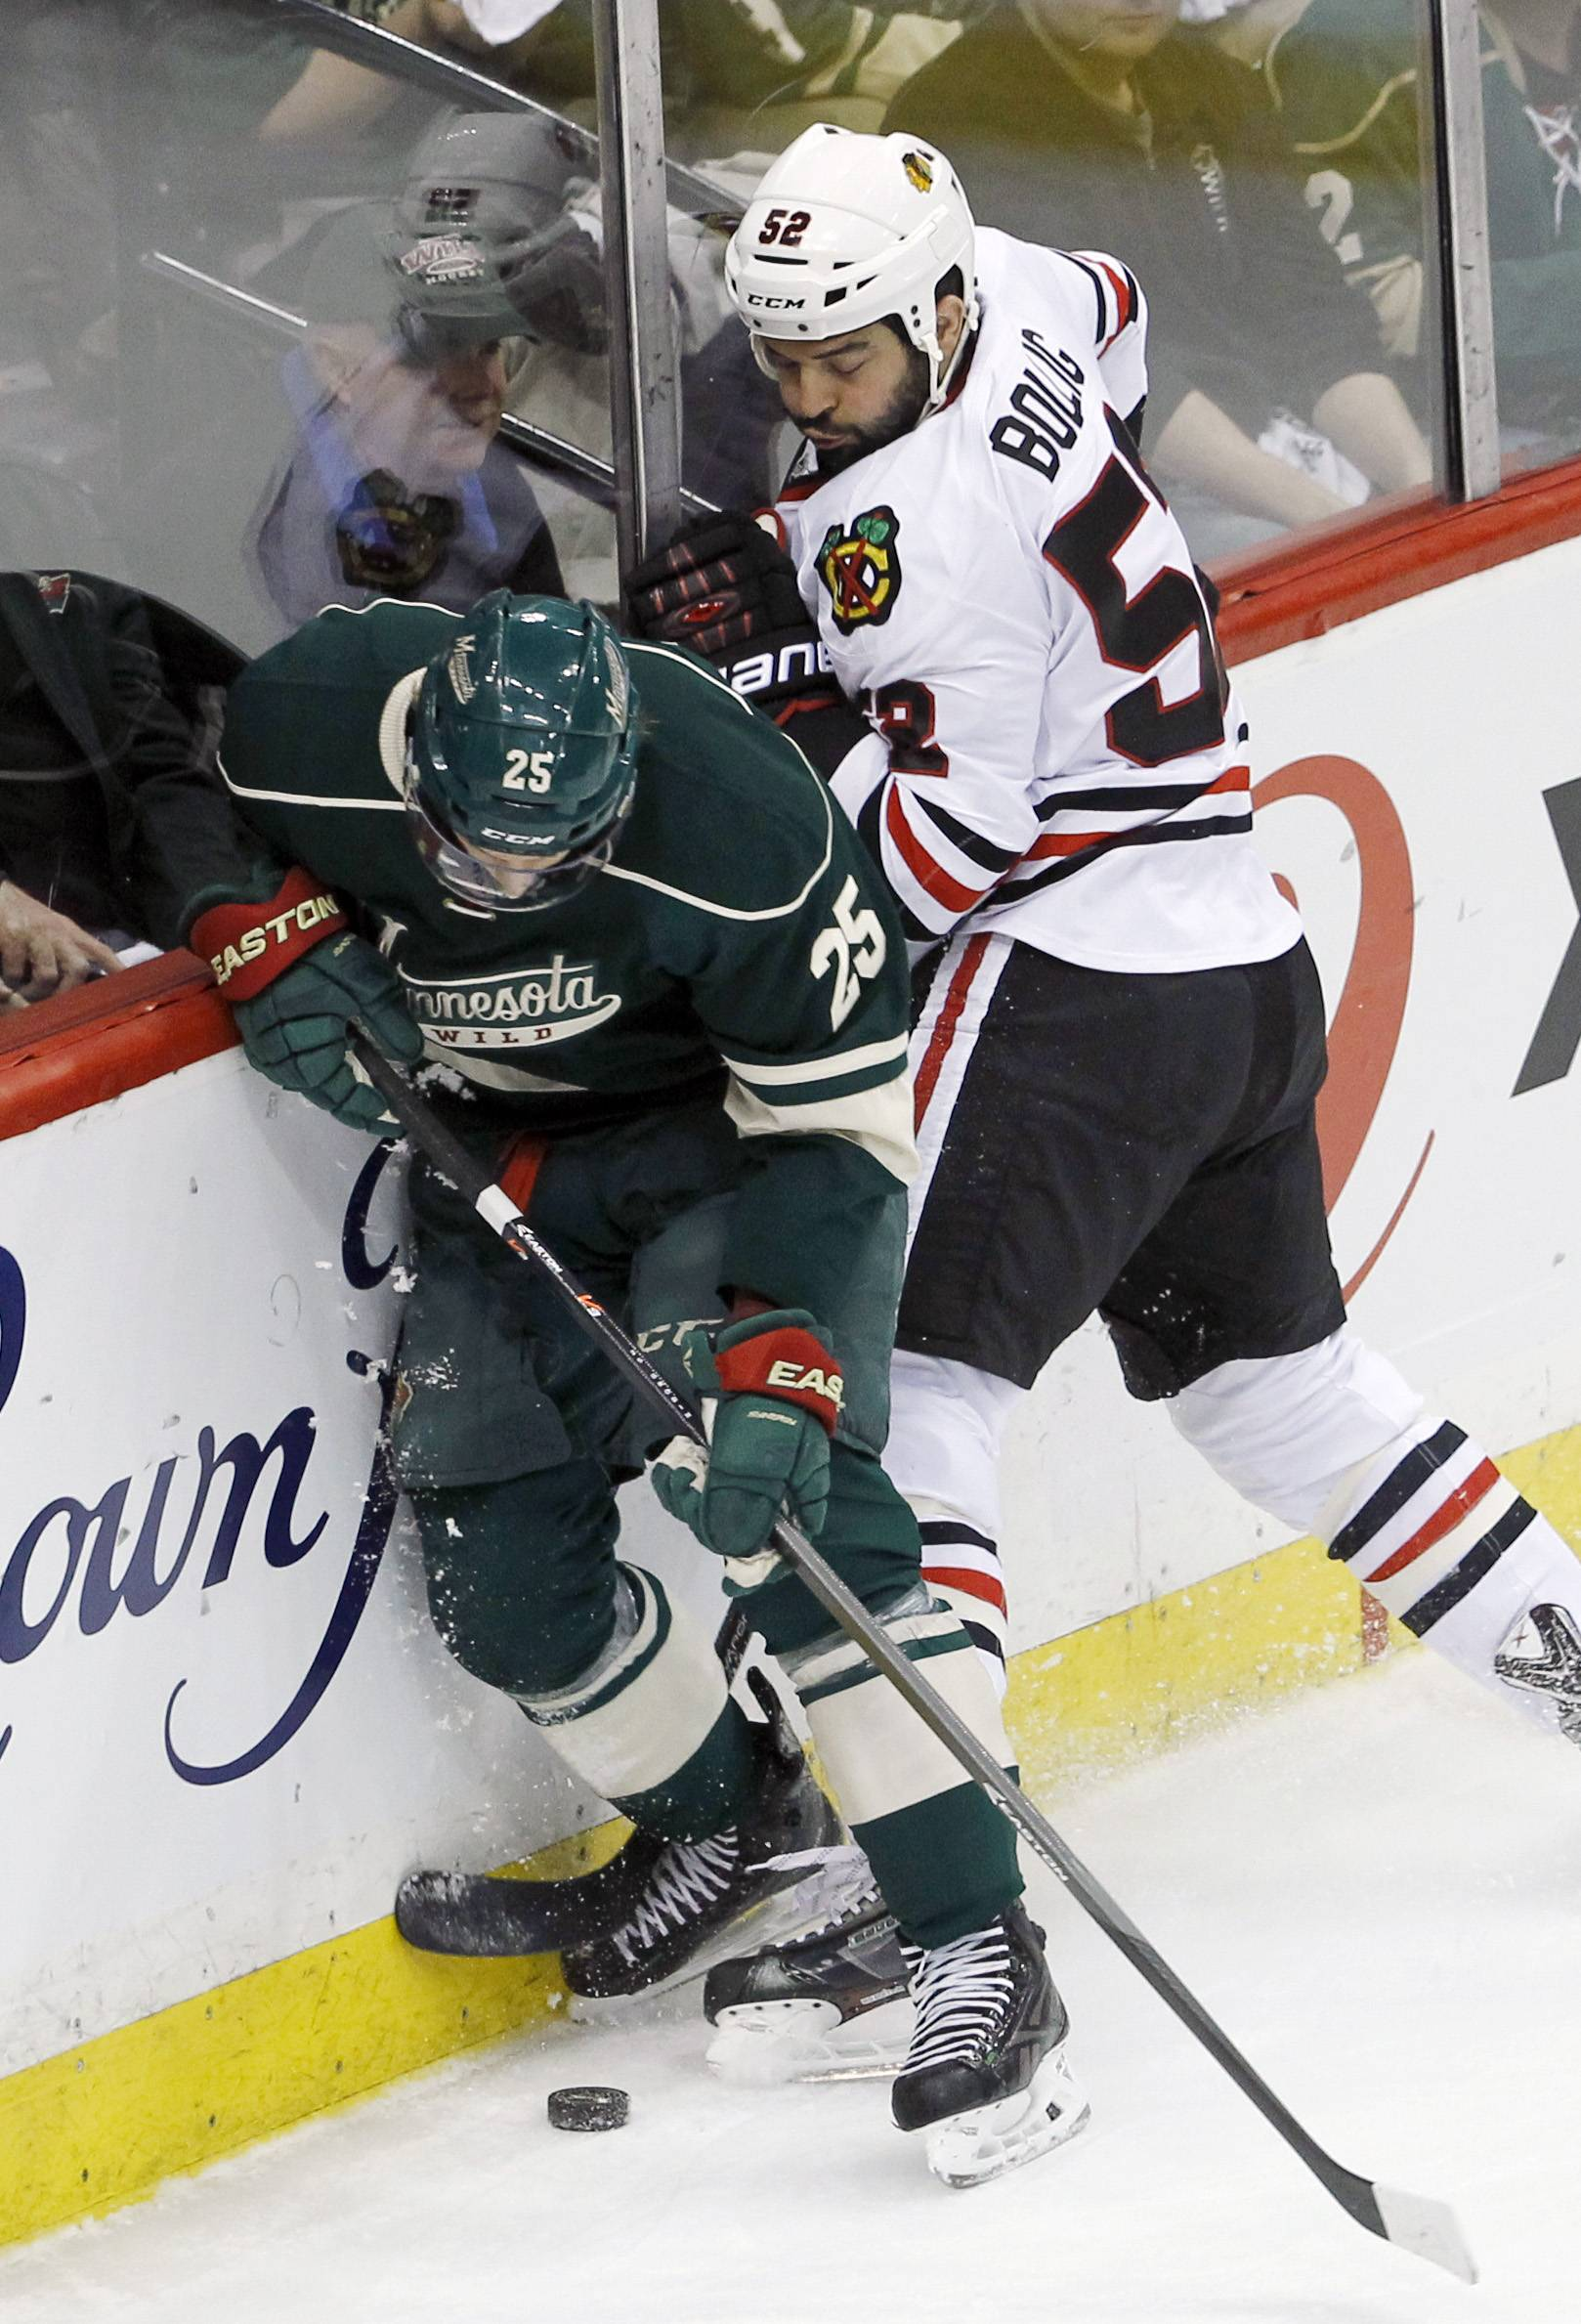 The Hawks' Brandon Bollig, here battling for the puck with the Wild's Jonas Brodin in Game 3 of the second-round Western Conference playoff series, will sit the next two games after being suspended for boarding Keith Ballard from behind in Friday's Game 4.